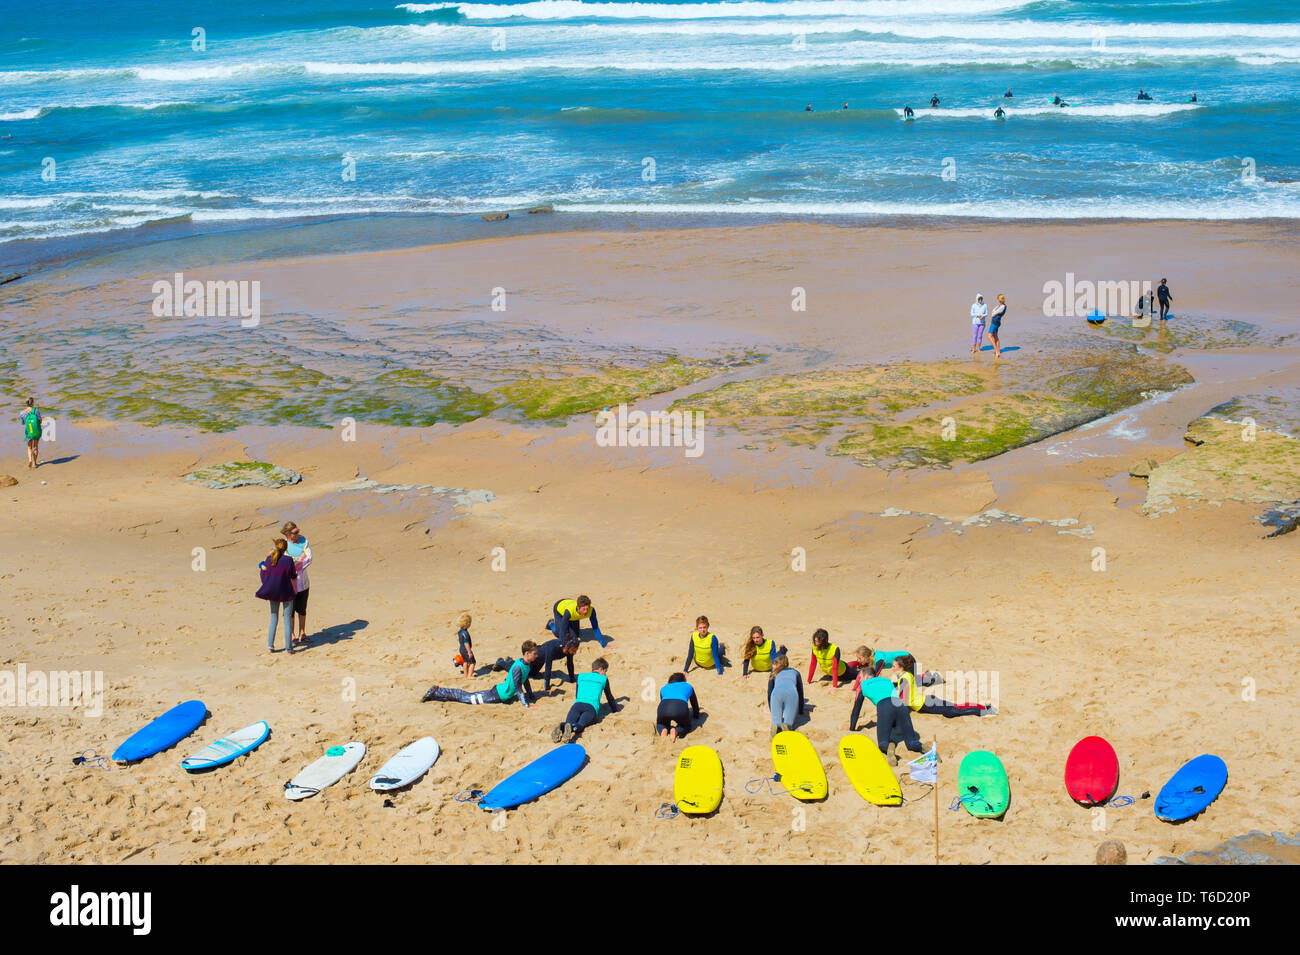 Surf lessons on the beach - Stock Image